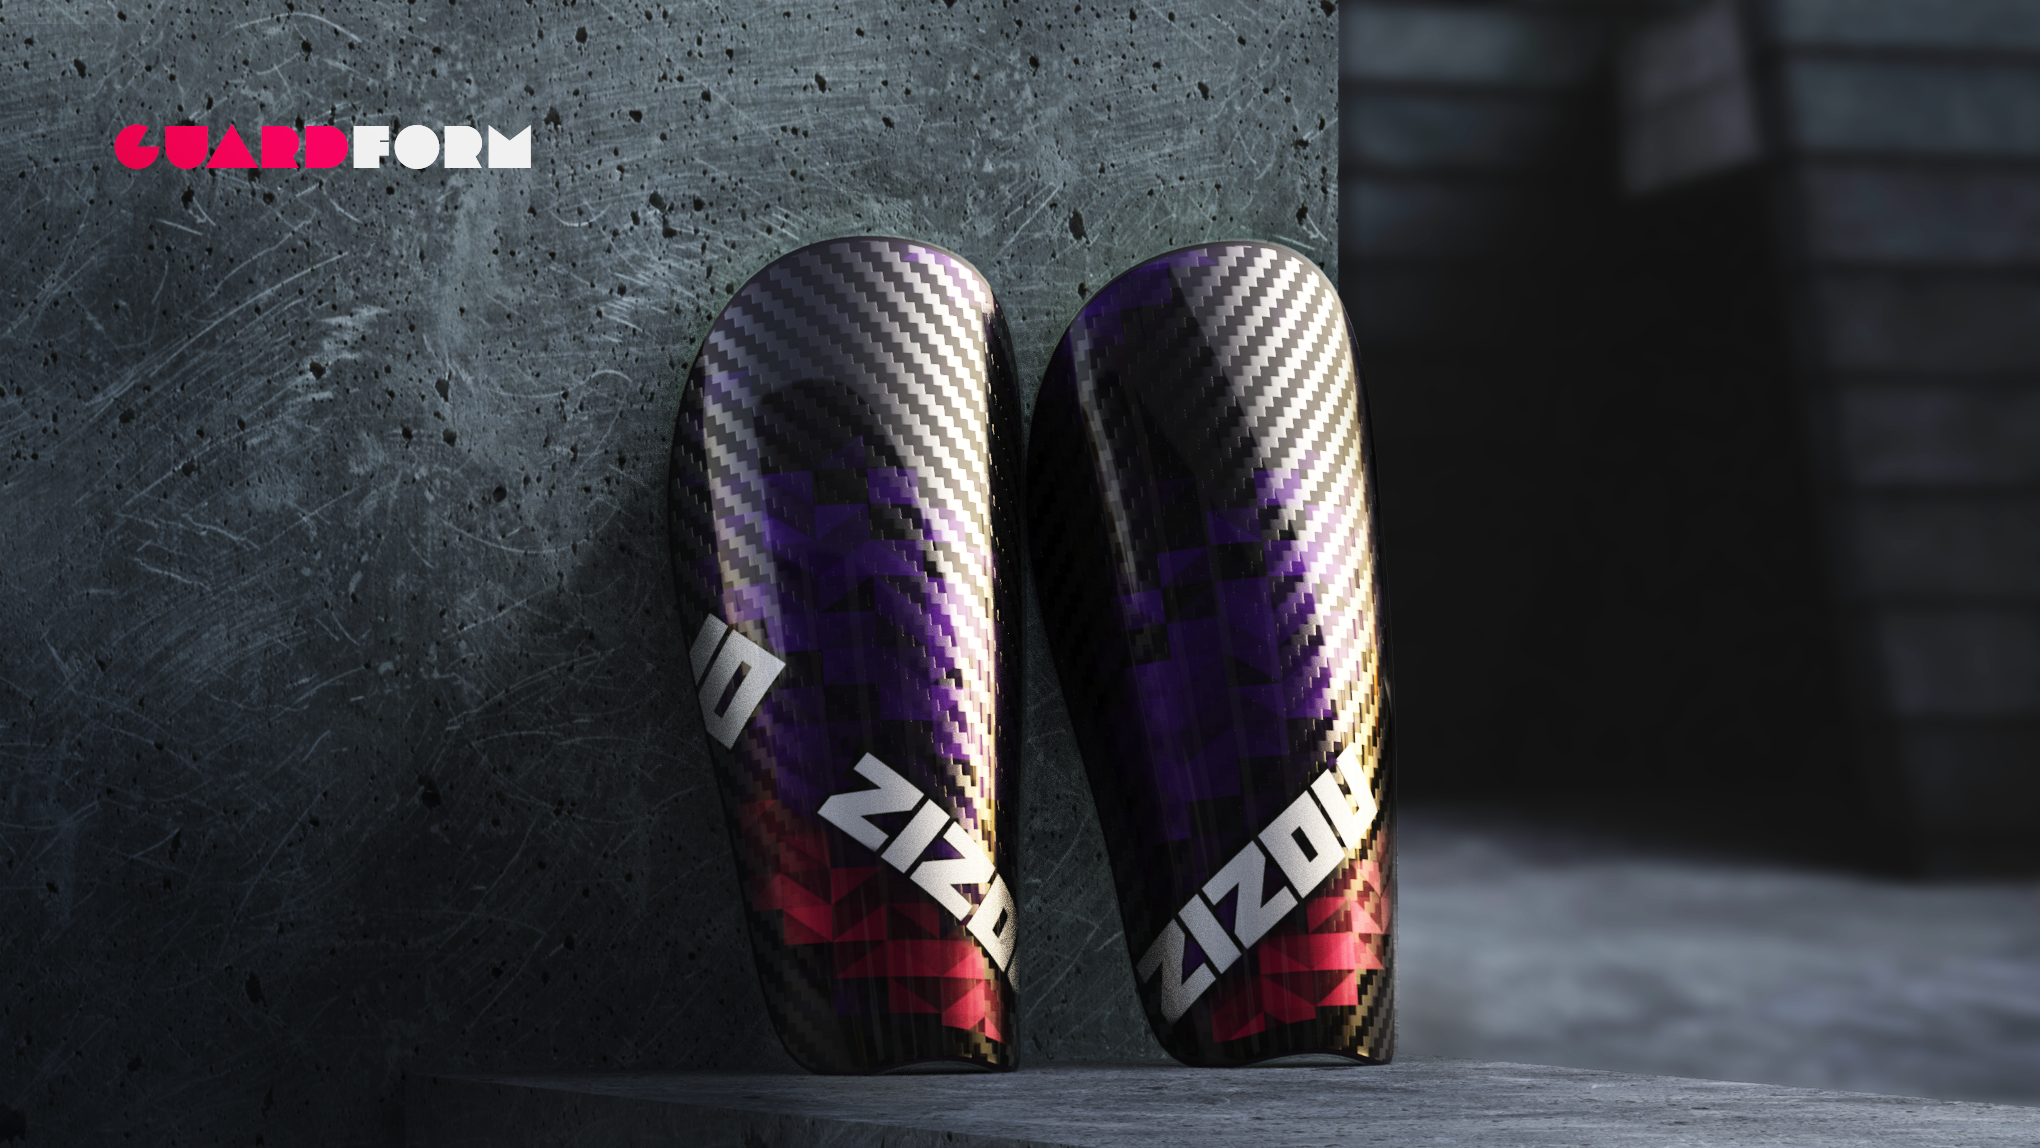 Custom Shin Guards